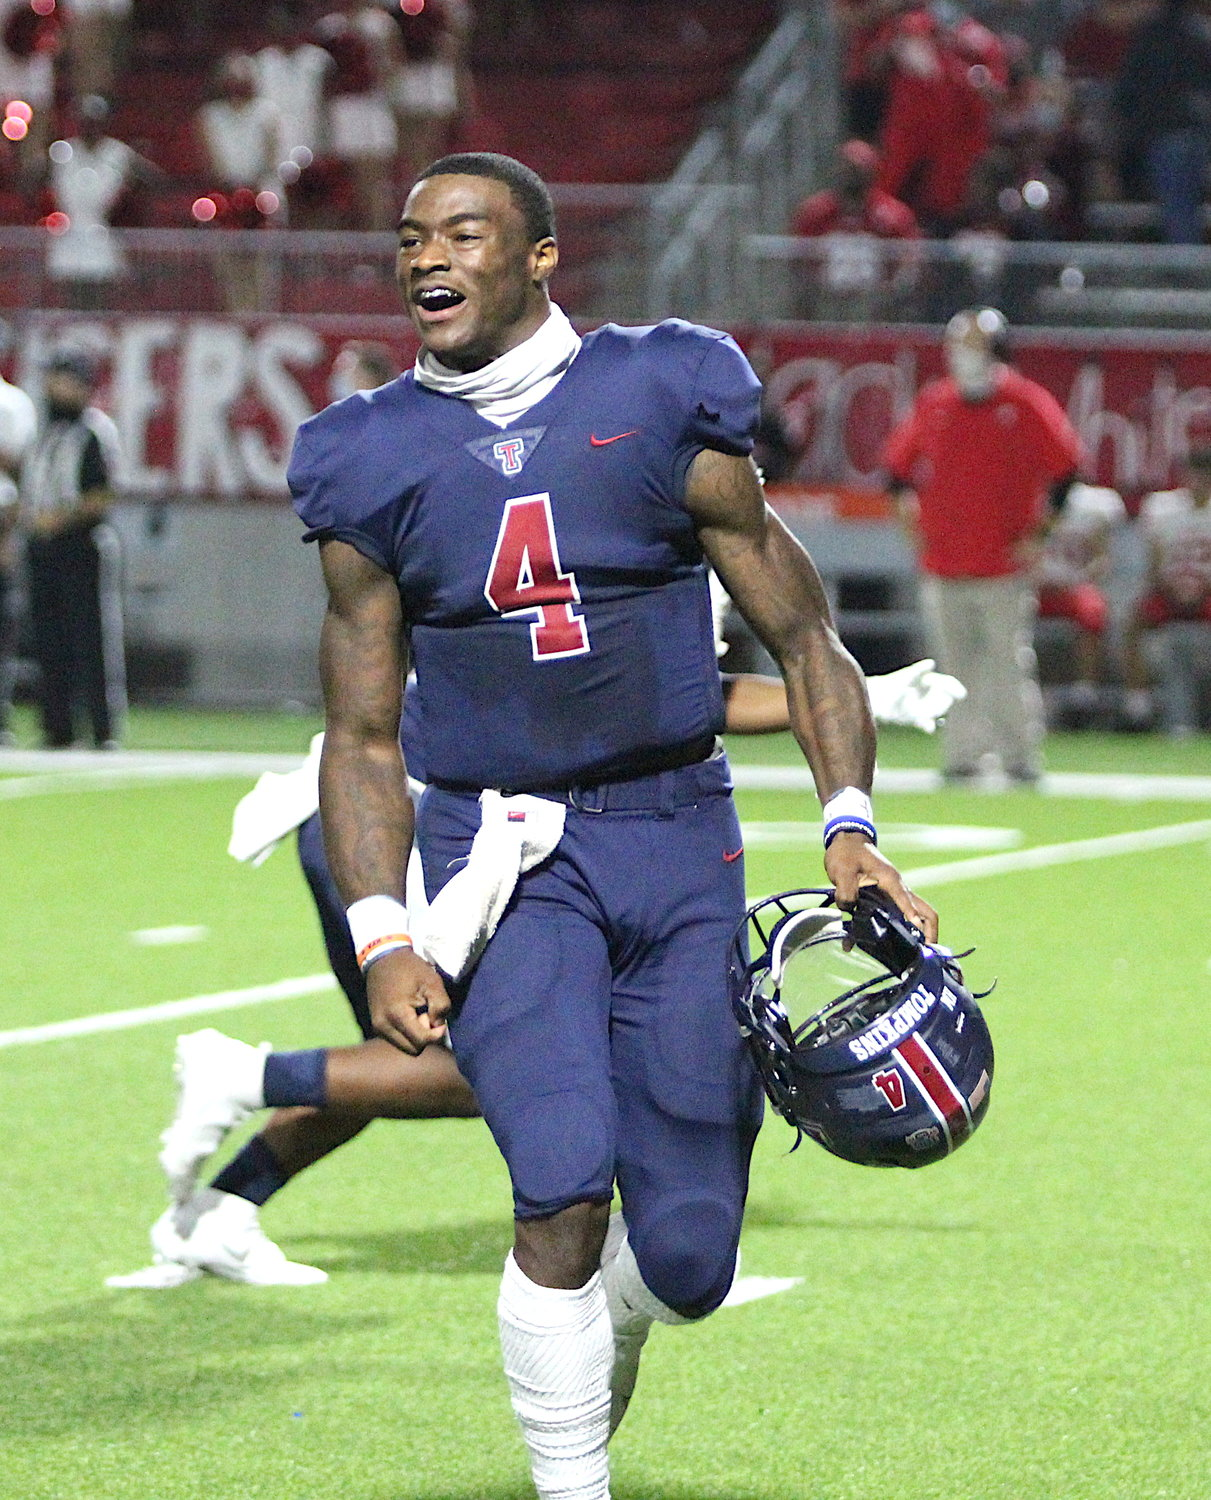 Tompkins senior quarterback Jalen Milroe celebrates after the Falcons' 24-19 win over Katy on Nov. 5 that snapped the Tigers' 75-game district winning streak.